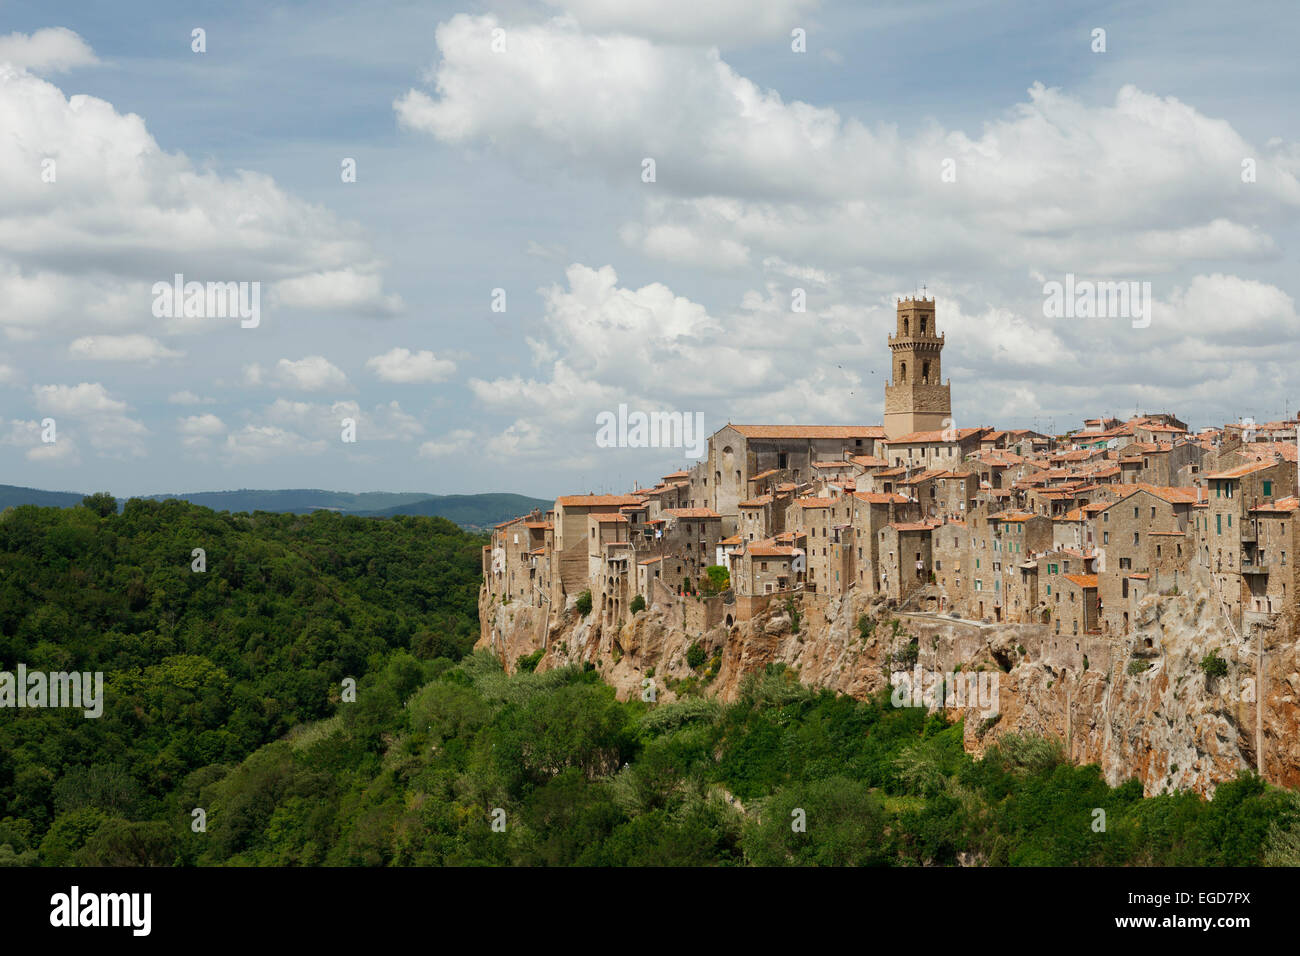 City scape of Pitigliano, hill town, province of Grosseto, Tuscany, Italy, Europe - Stock Image